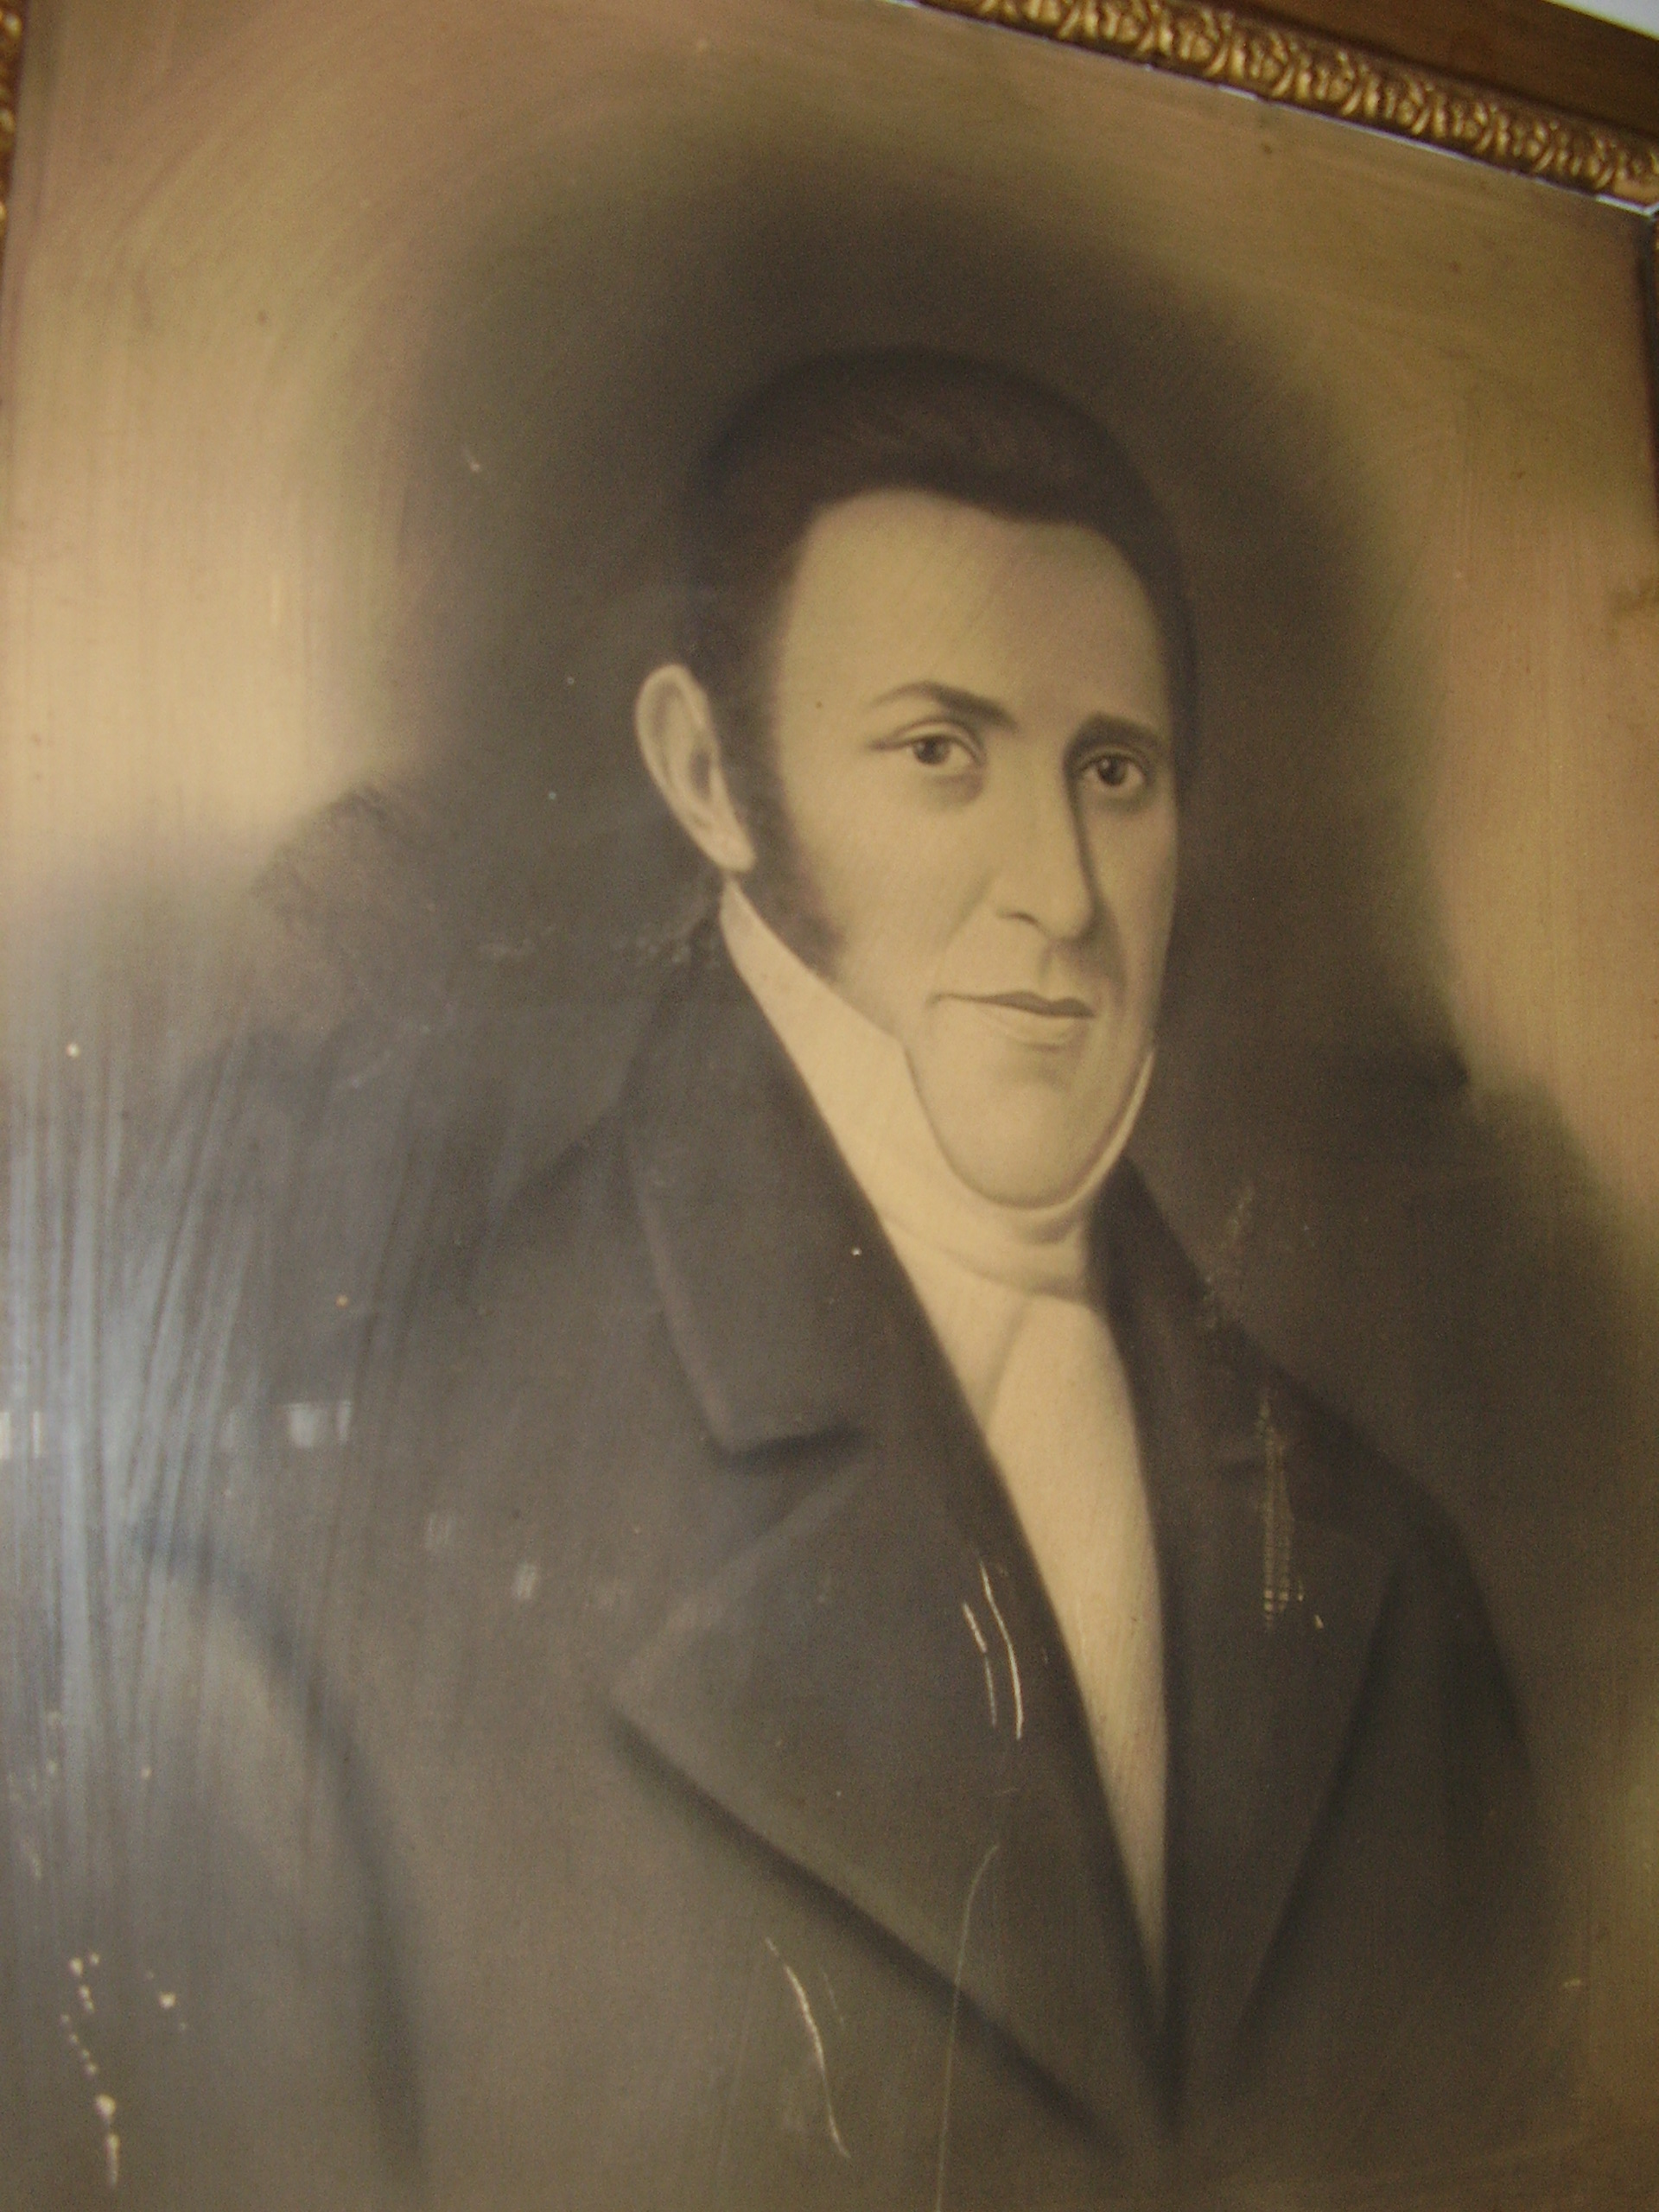 Early portrait of Louis Wilson, who lived in the house from 1830 until his death in Mexico in 1847.  Neighboring Wilson county was created in his memory by the North Carolina General Assembly.